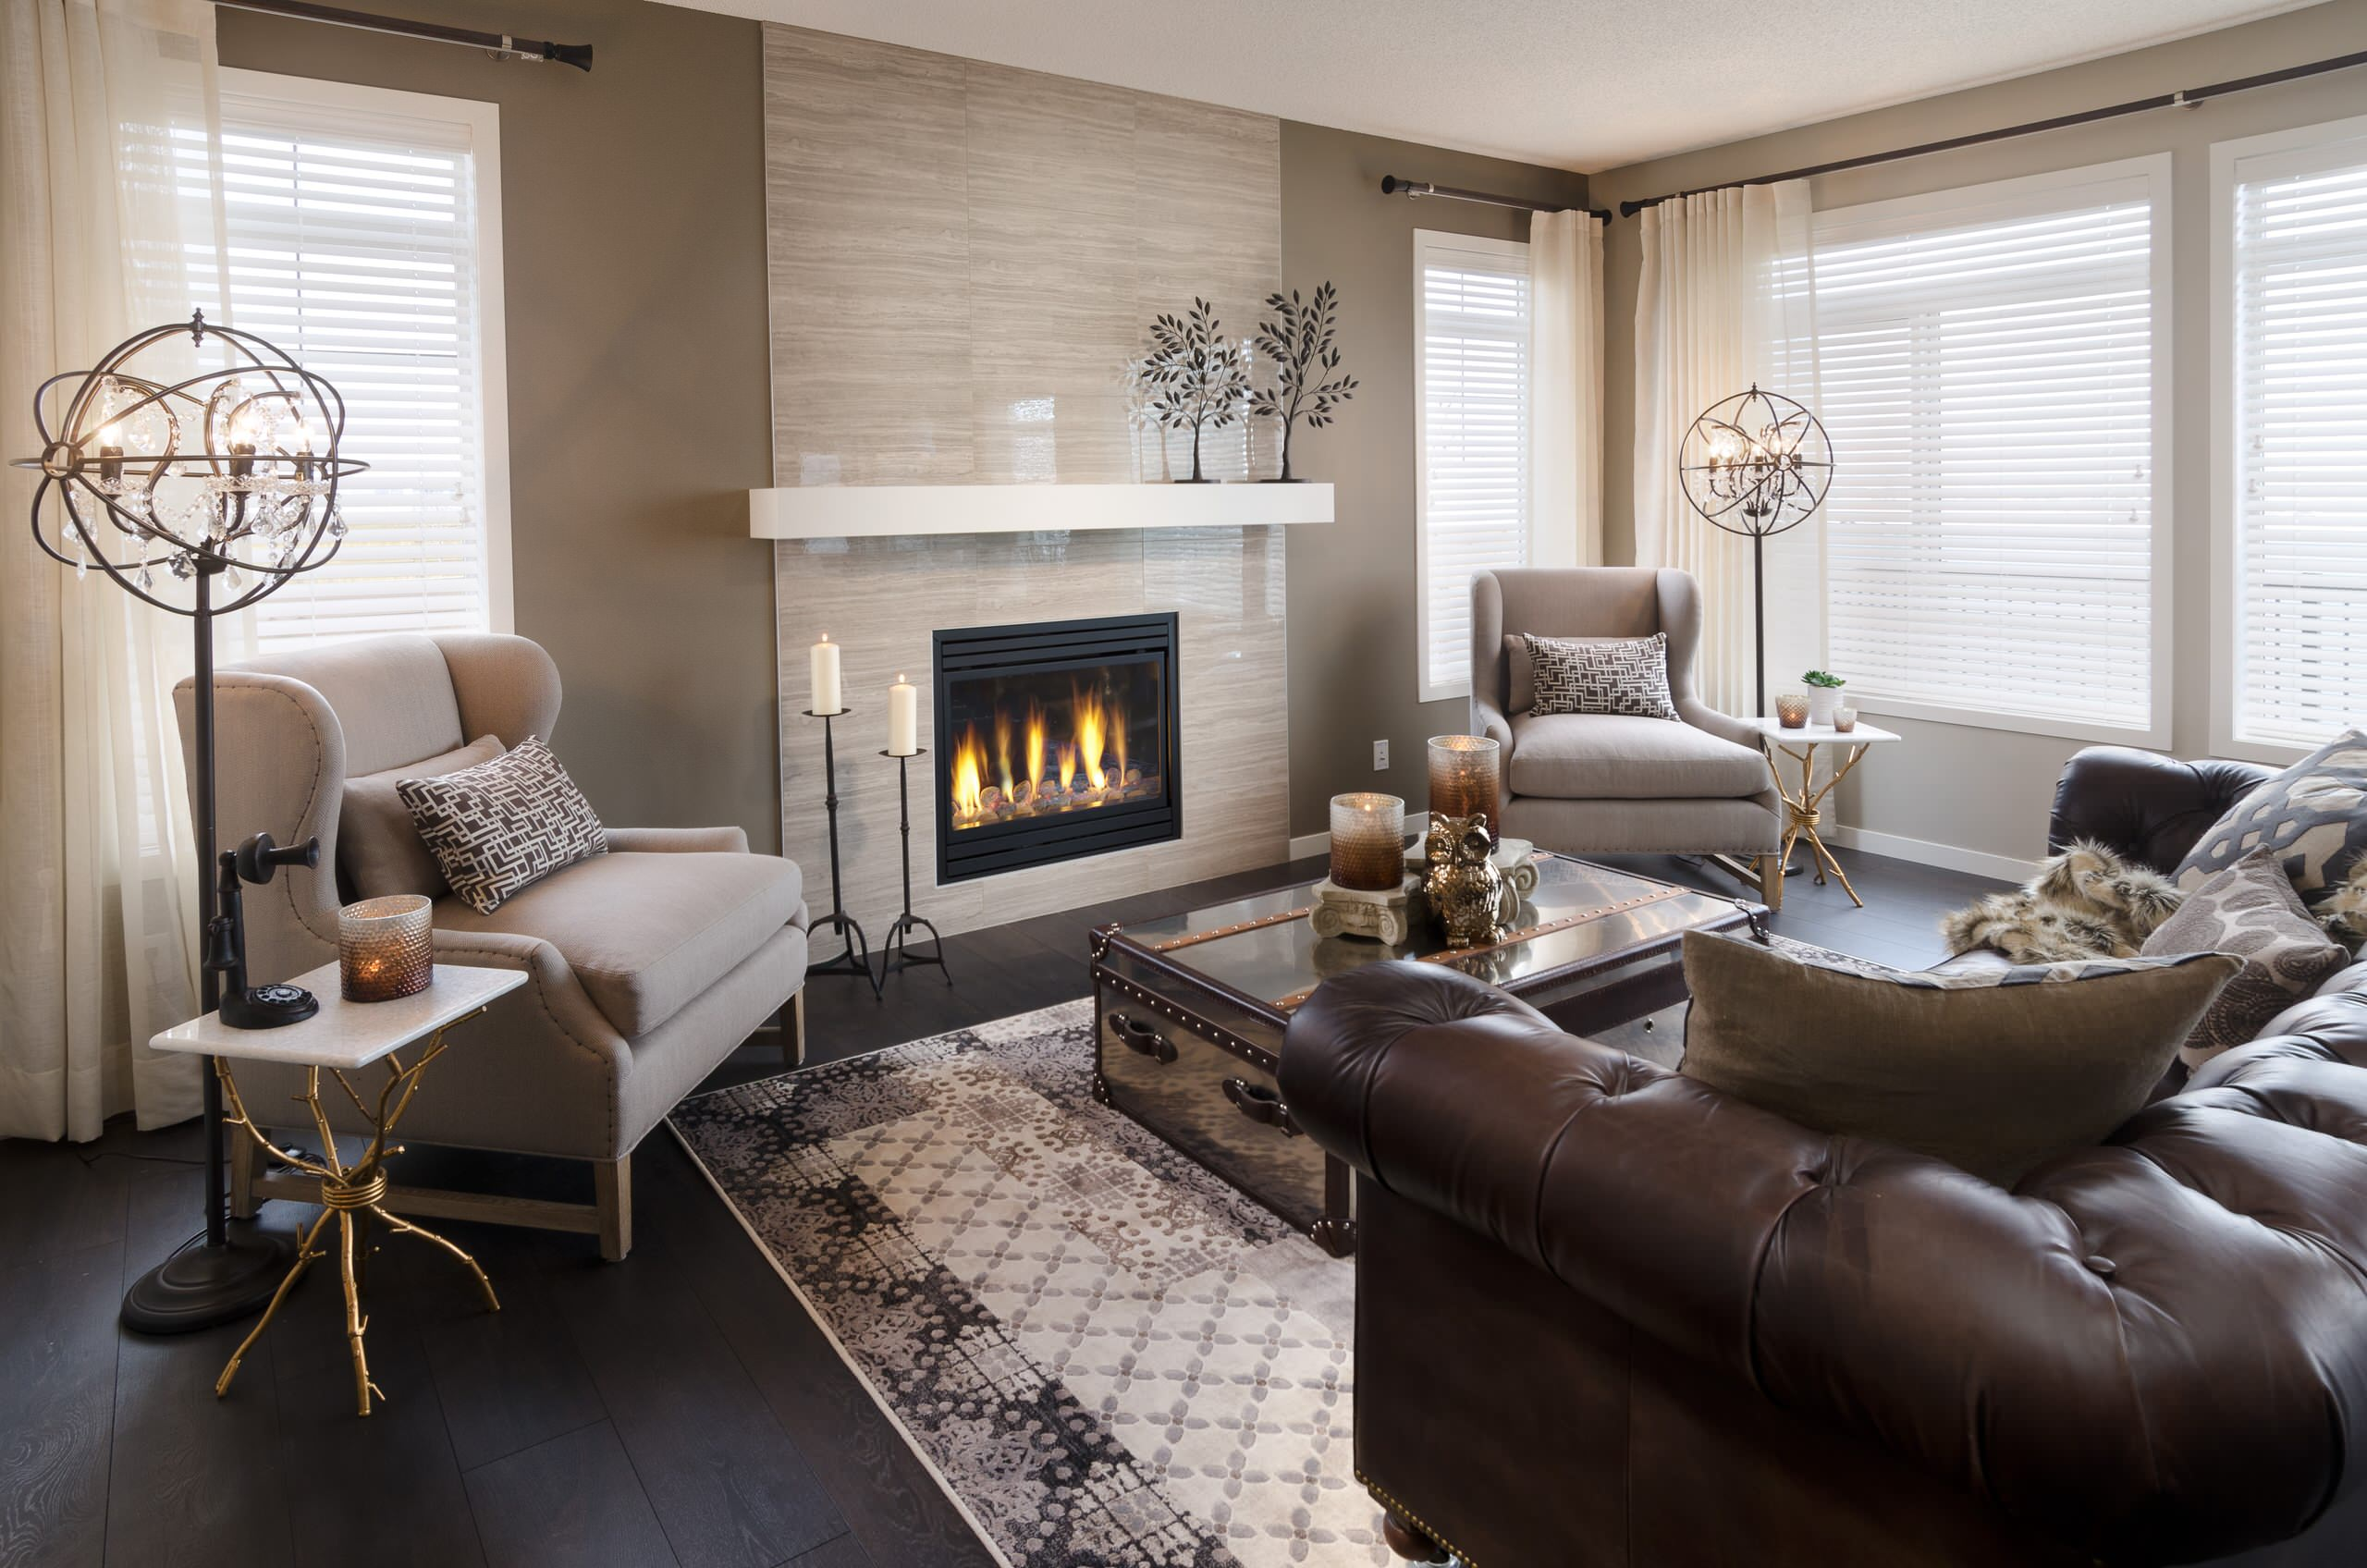 9X9 Living Room Ideas & Photos  Houzz